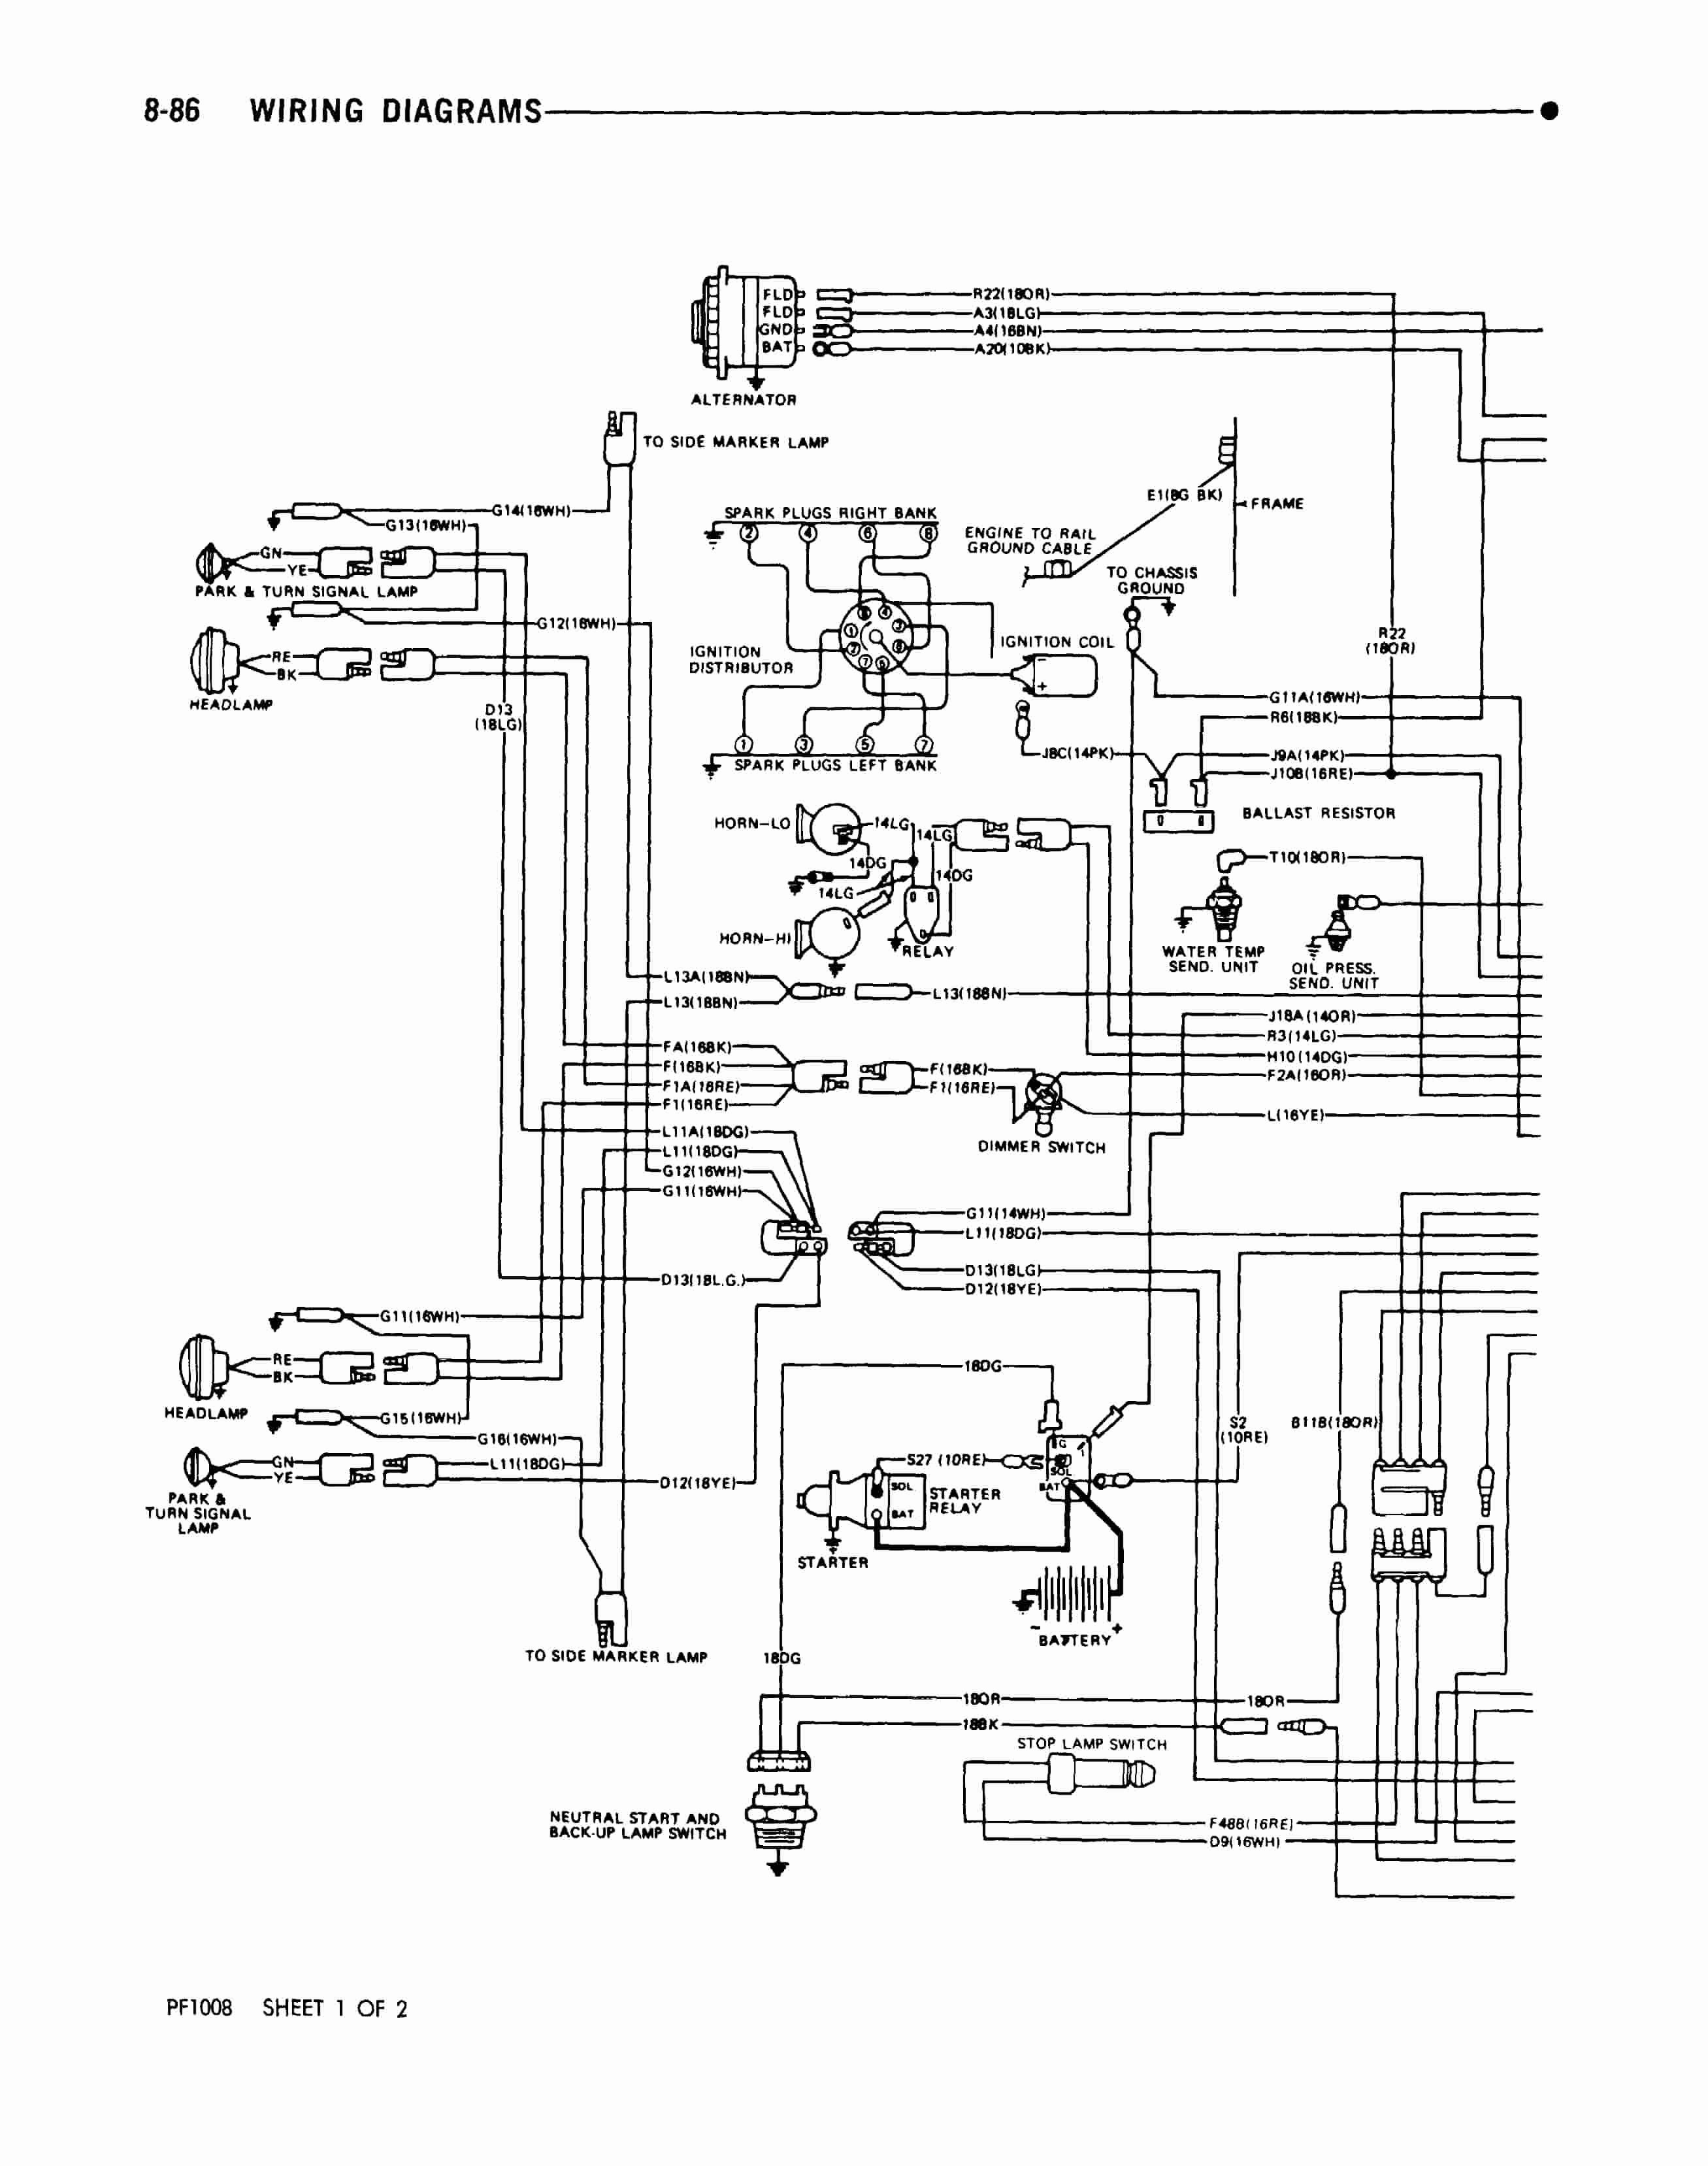 Freightliner Chassis Wiring Diagram Fleetwood Rv Battery 1988 Awesome Of